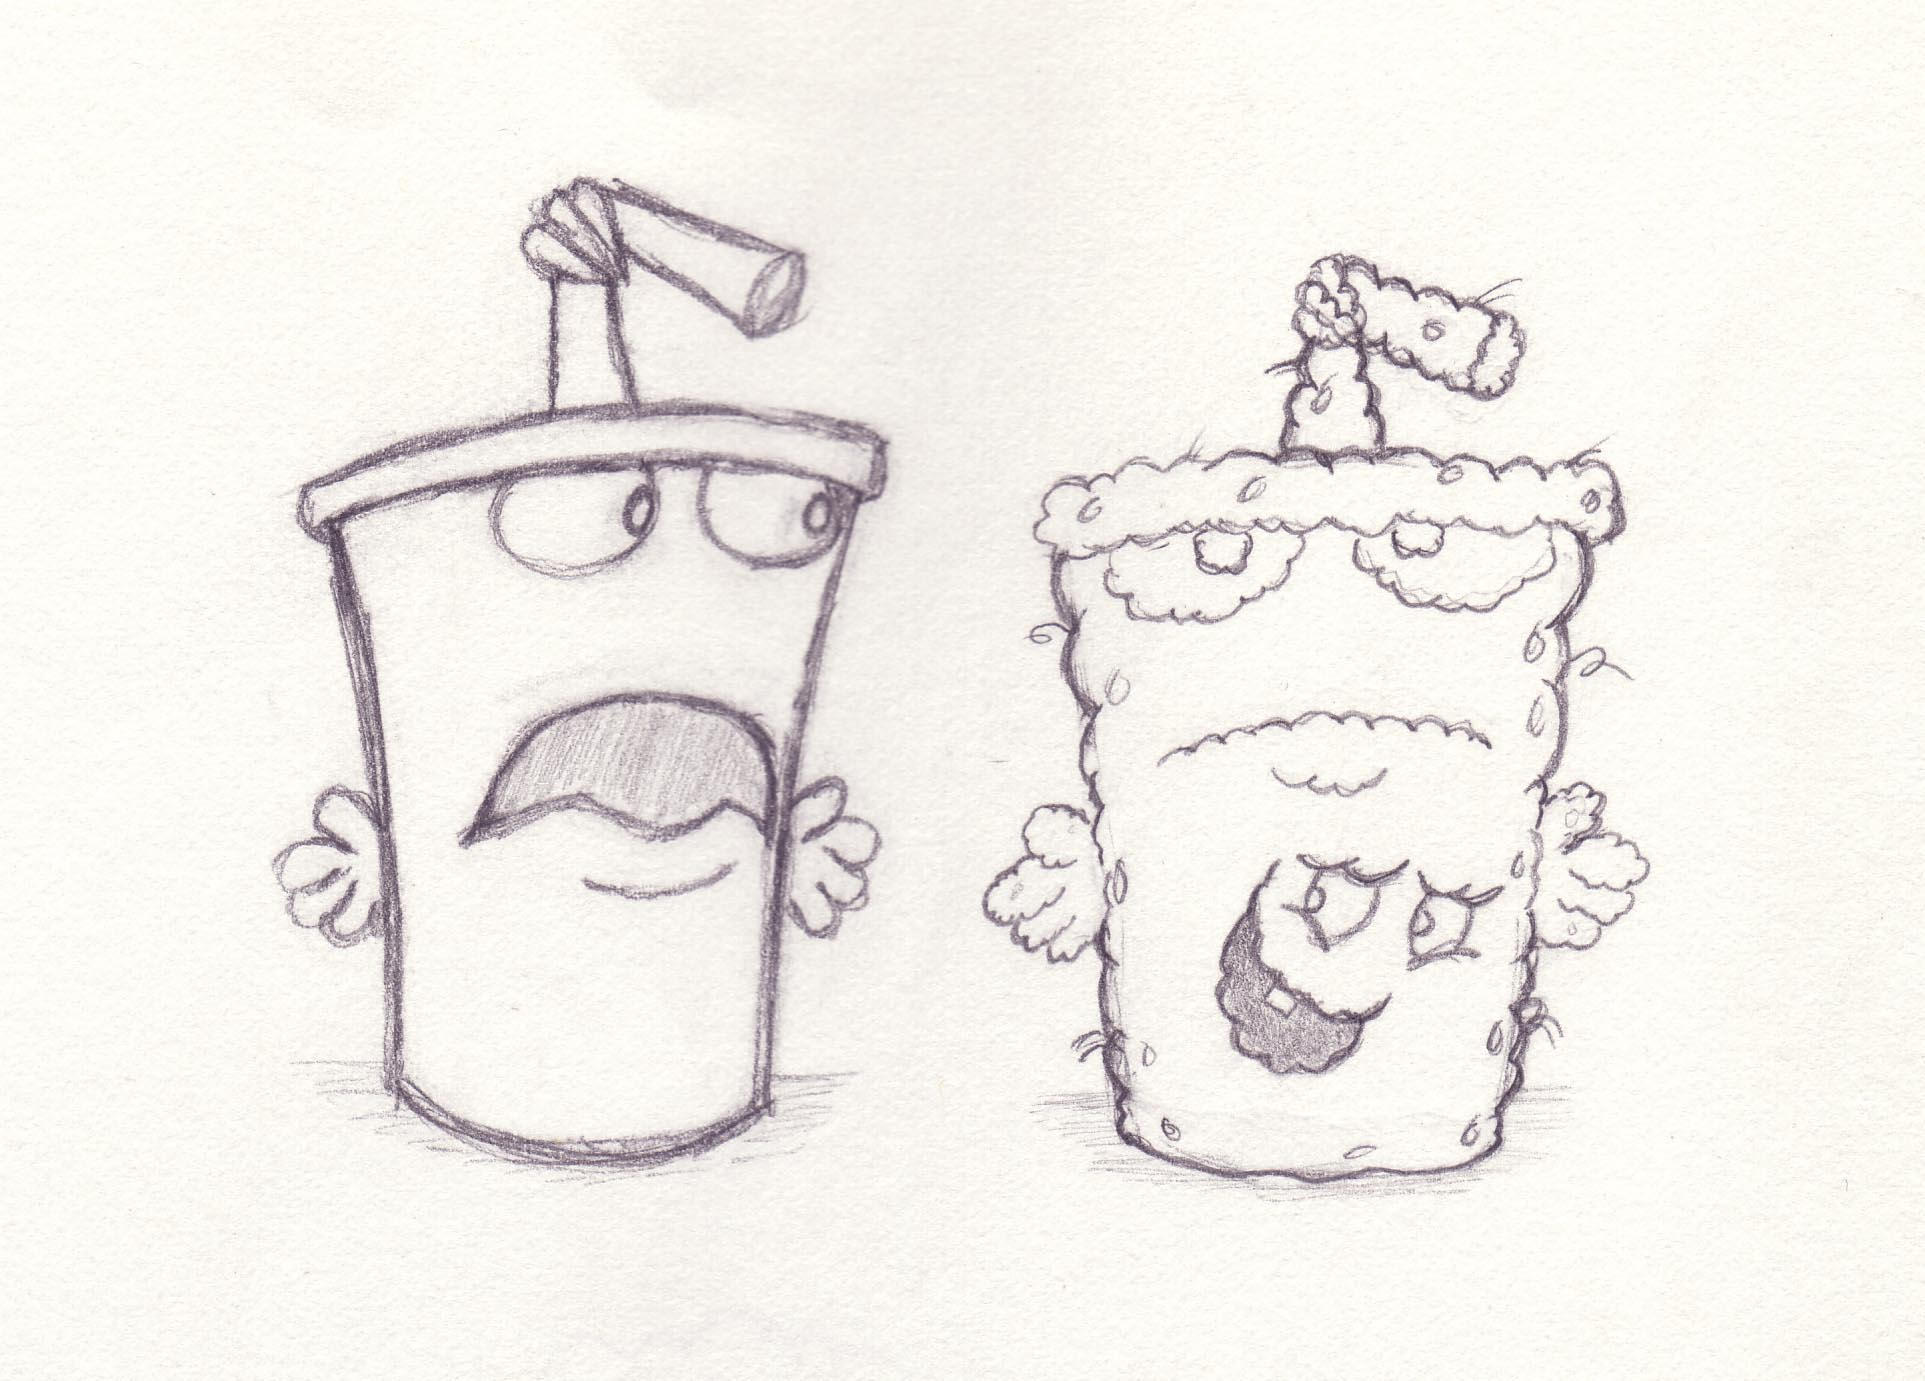 aqua teen hungerforce coloring pages - photo#15